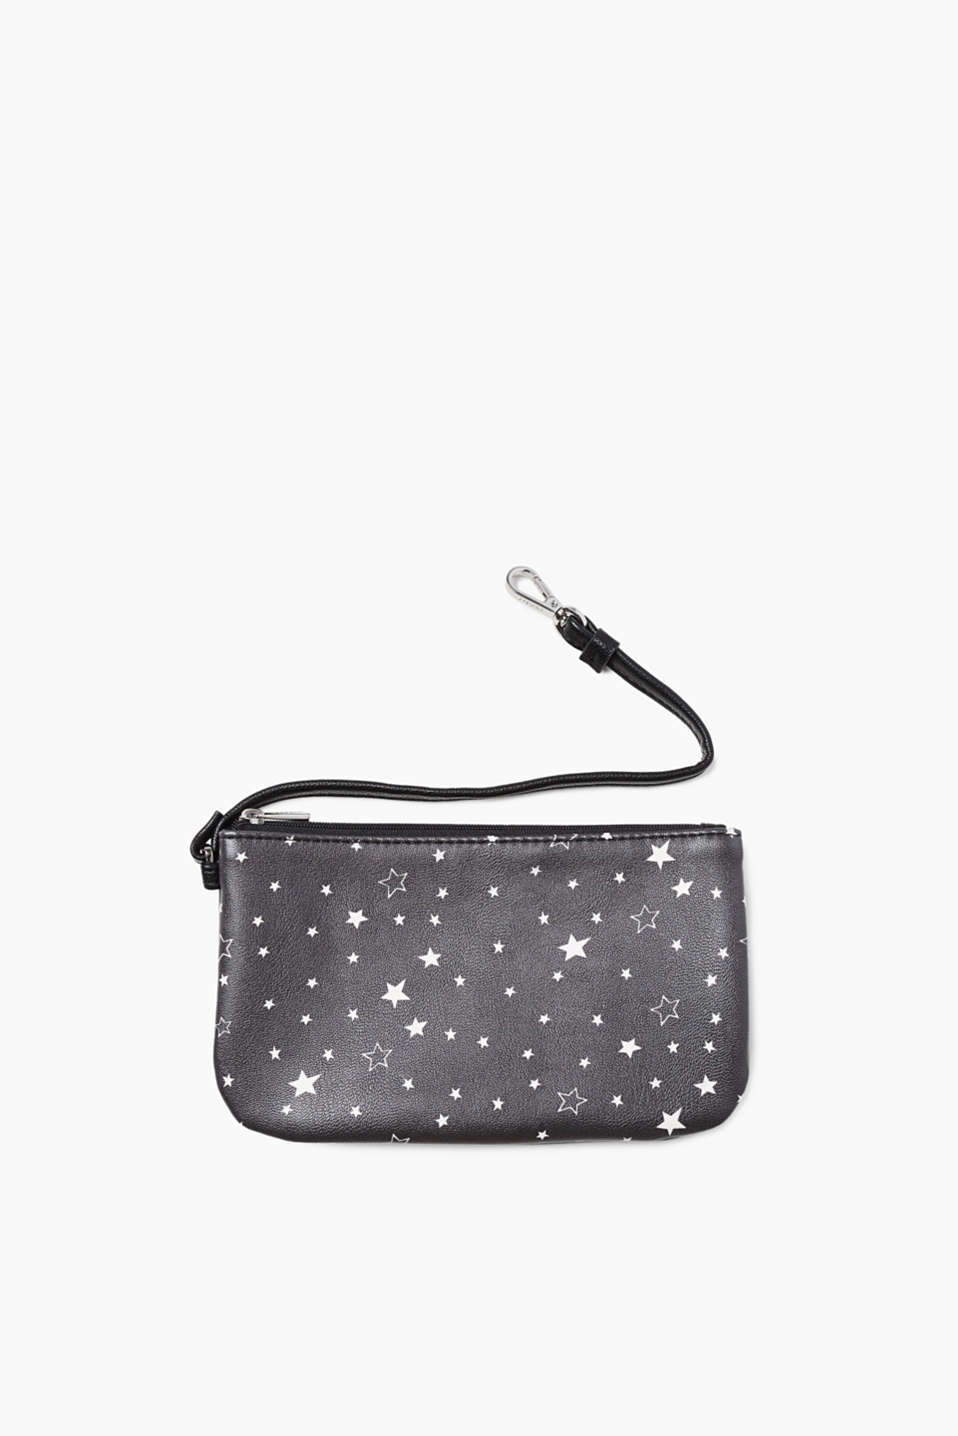 Written in the Stars! Etui in glatter Leder-Optik mit Allover-Stern-Print